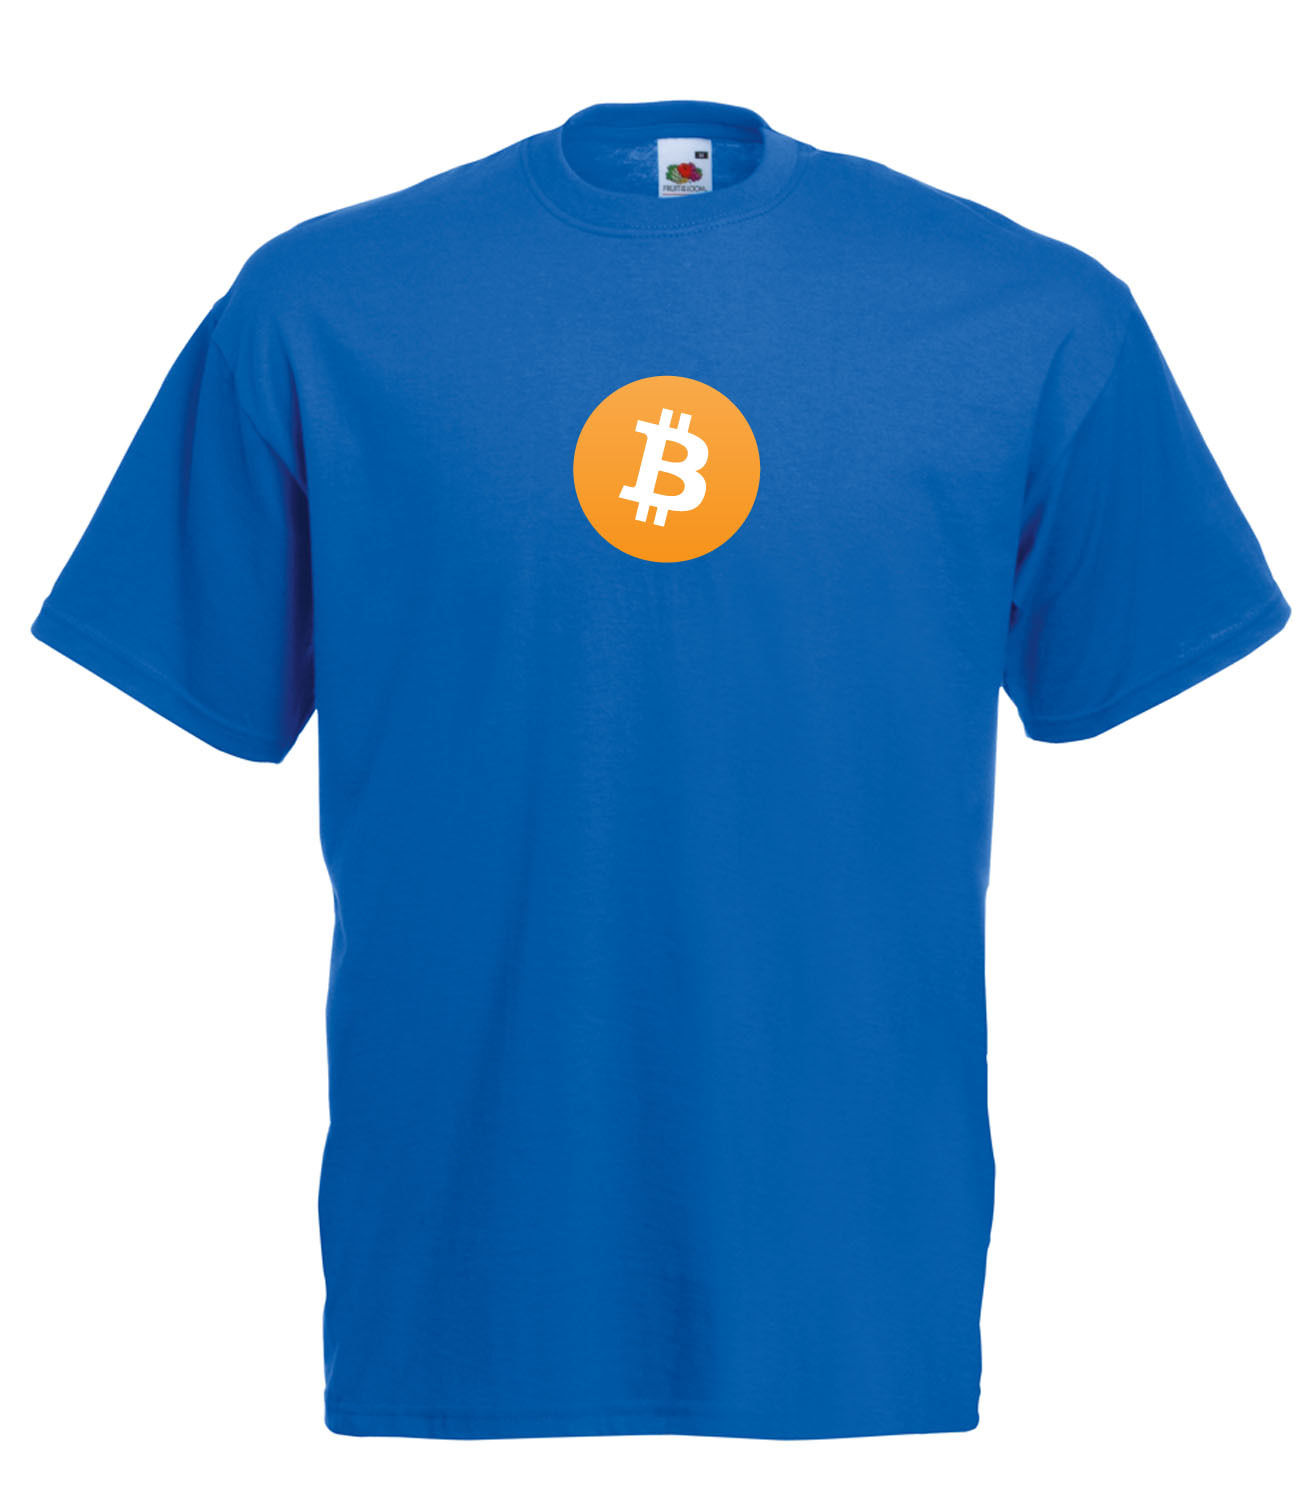 BITCOIN Cryptocurrency INSPIRED STYLE GRAPHIC HIGH QUALITY FULL COLOUR T SHIRT